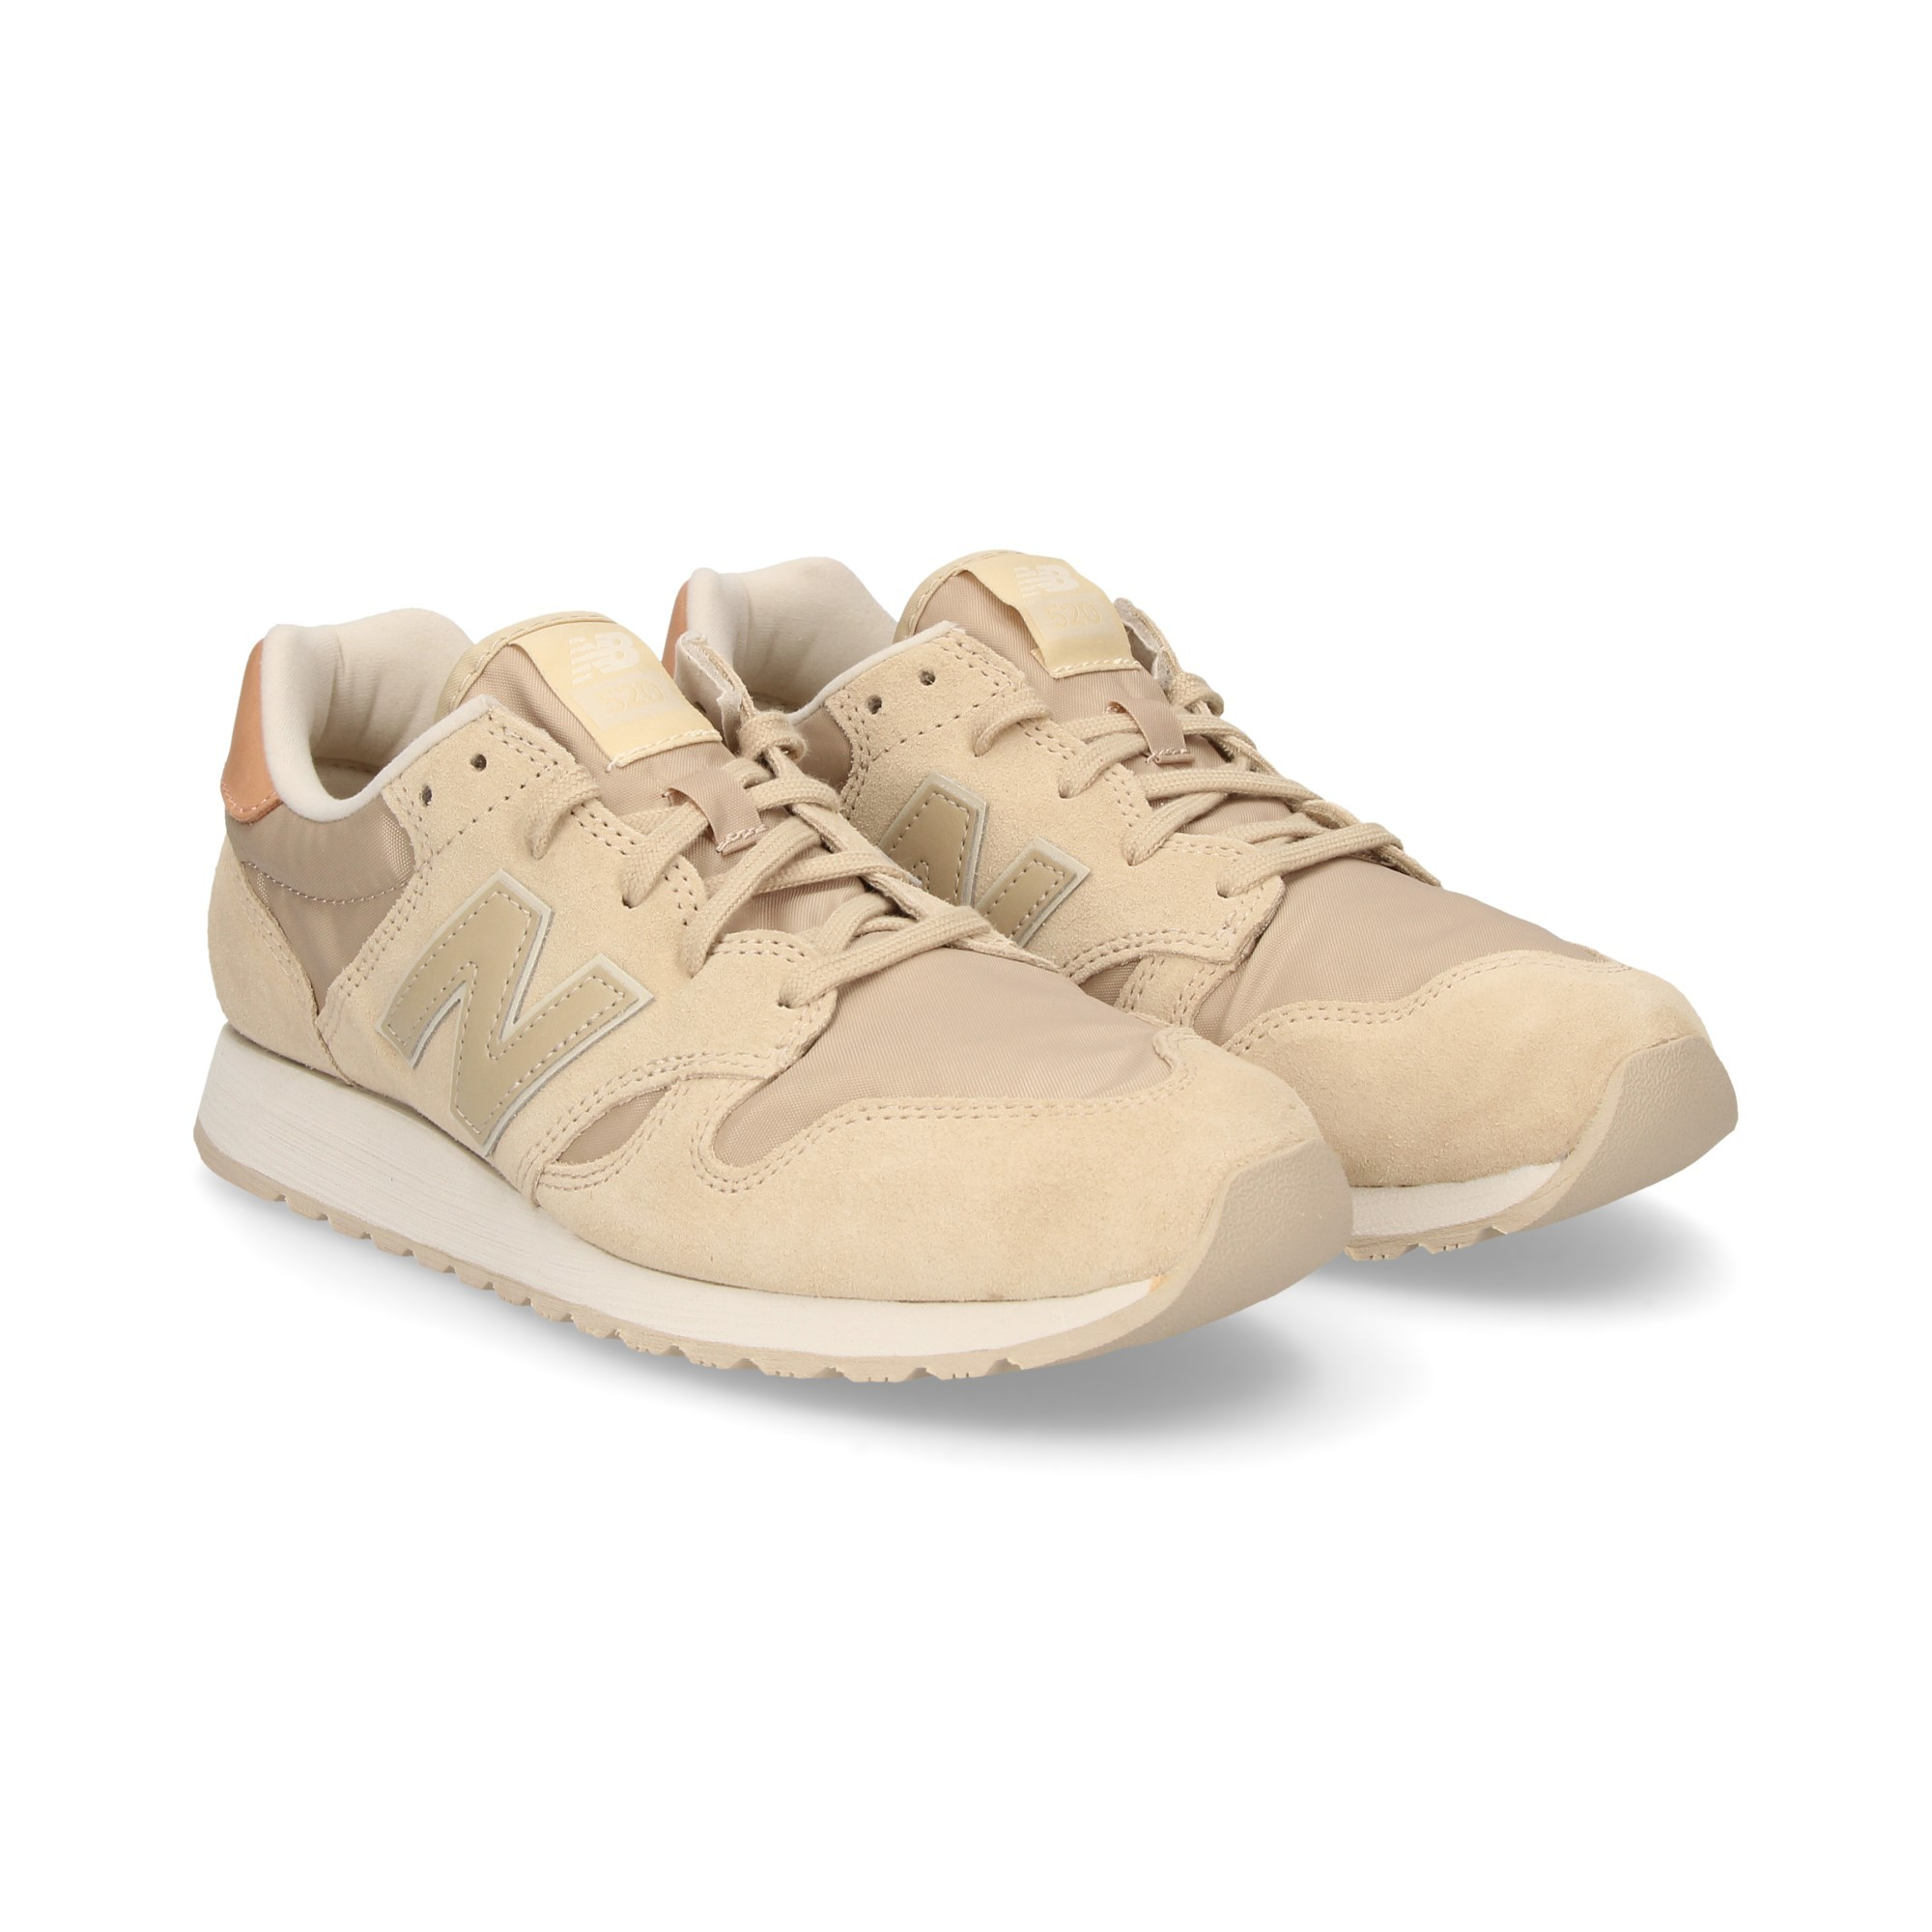 NEW BALANCE Women's Sneakers 520 BS BEIGE